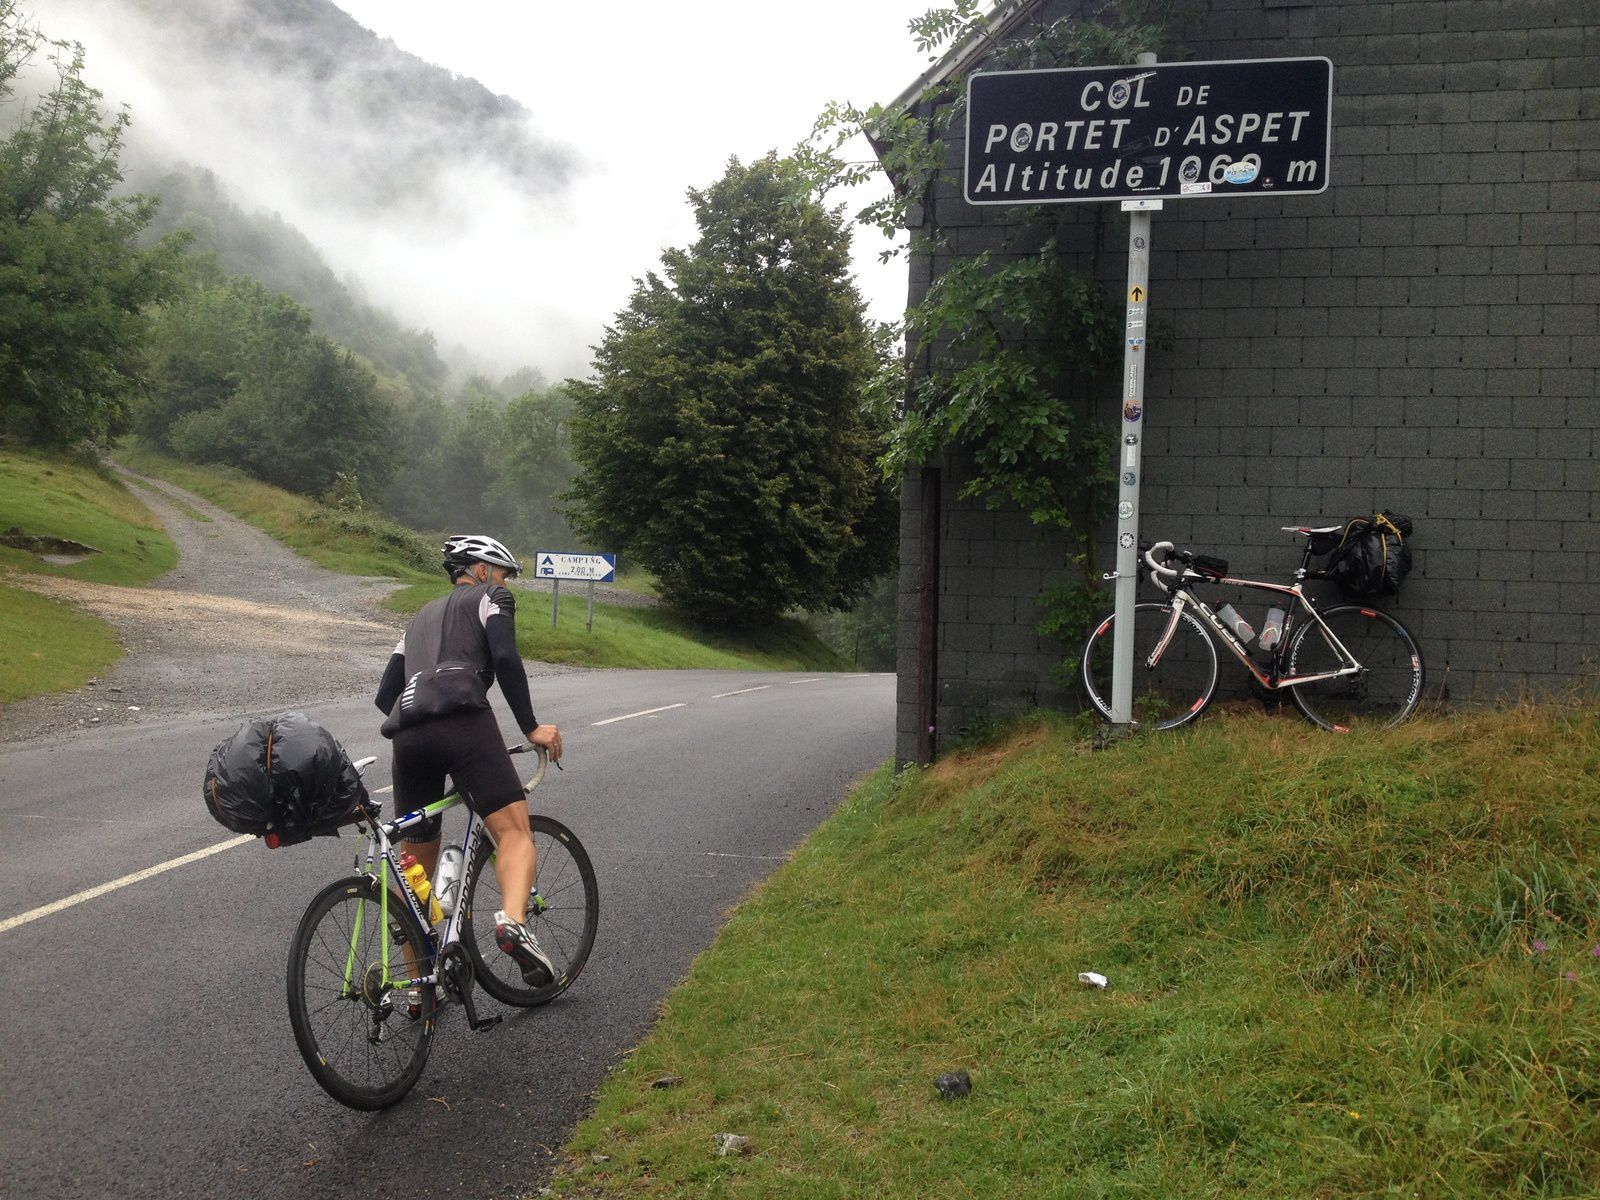 Crossing Pyreneu